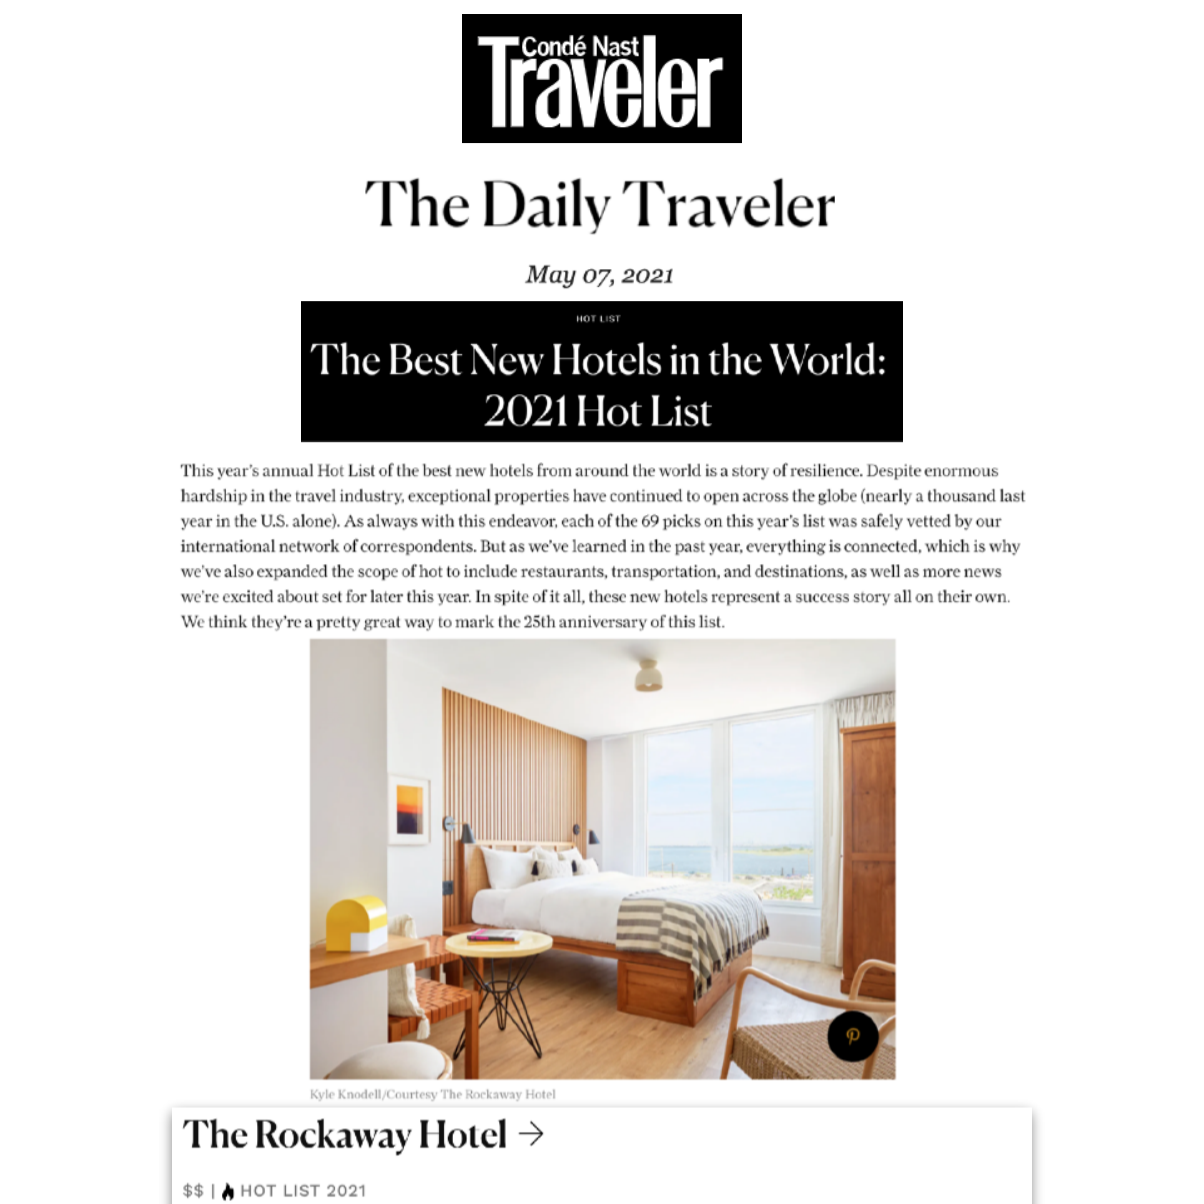 Article from The Traveler about The Rockaway Hotel